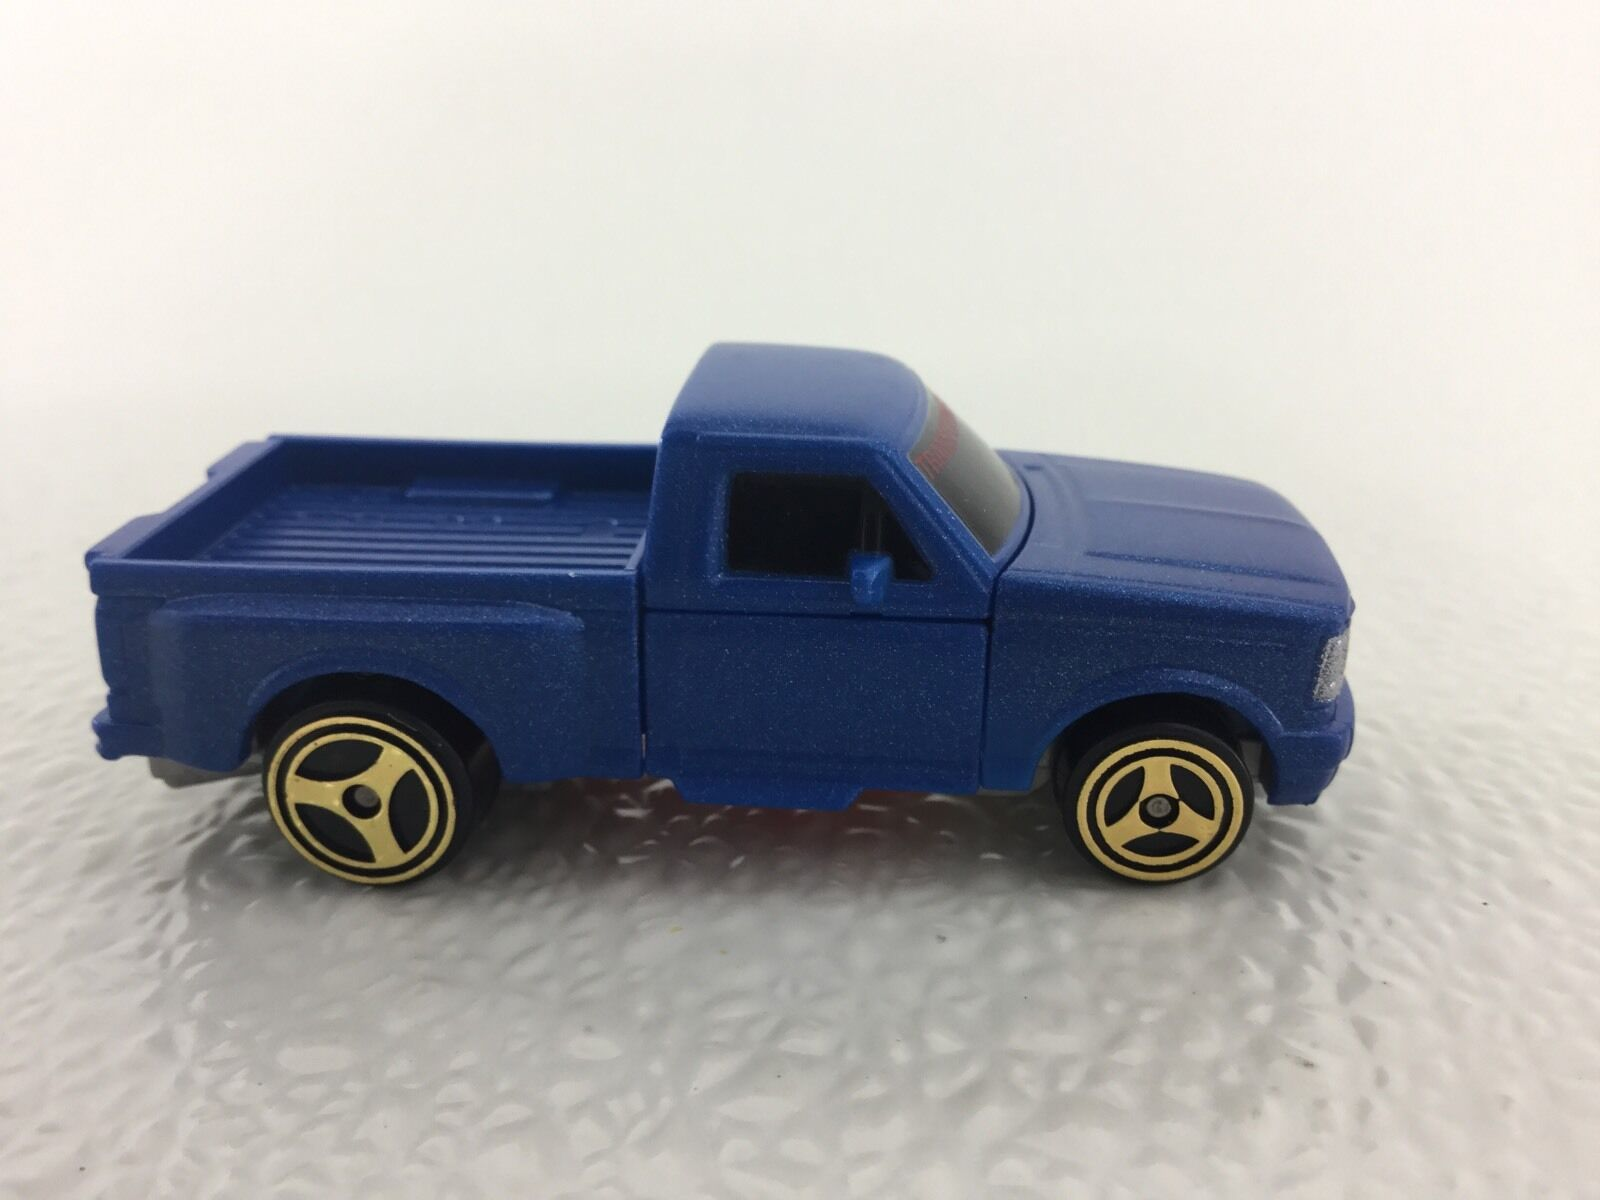 PredOTYPE PAINTED Transformers Generation 2 GoBots MOTORMOUTH MOTORMOUTH MOTORMOUTH d773c4